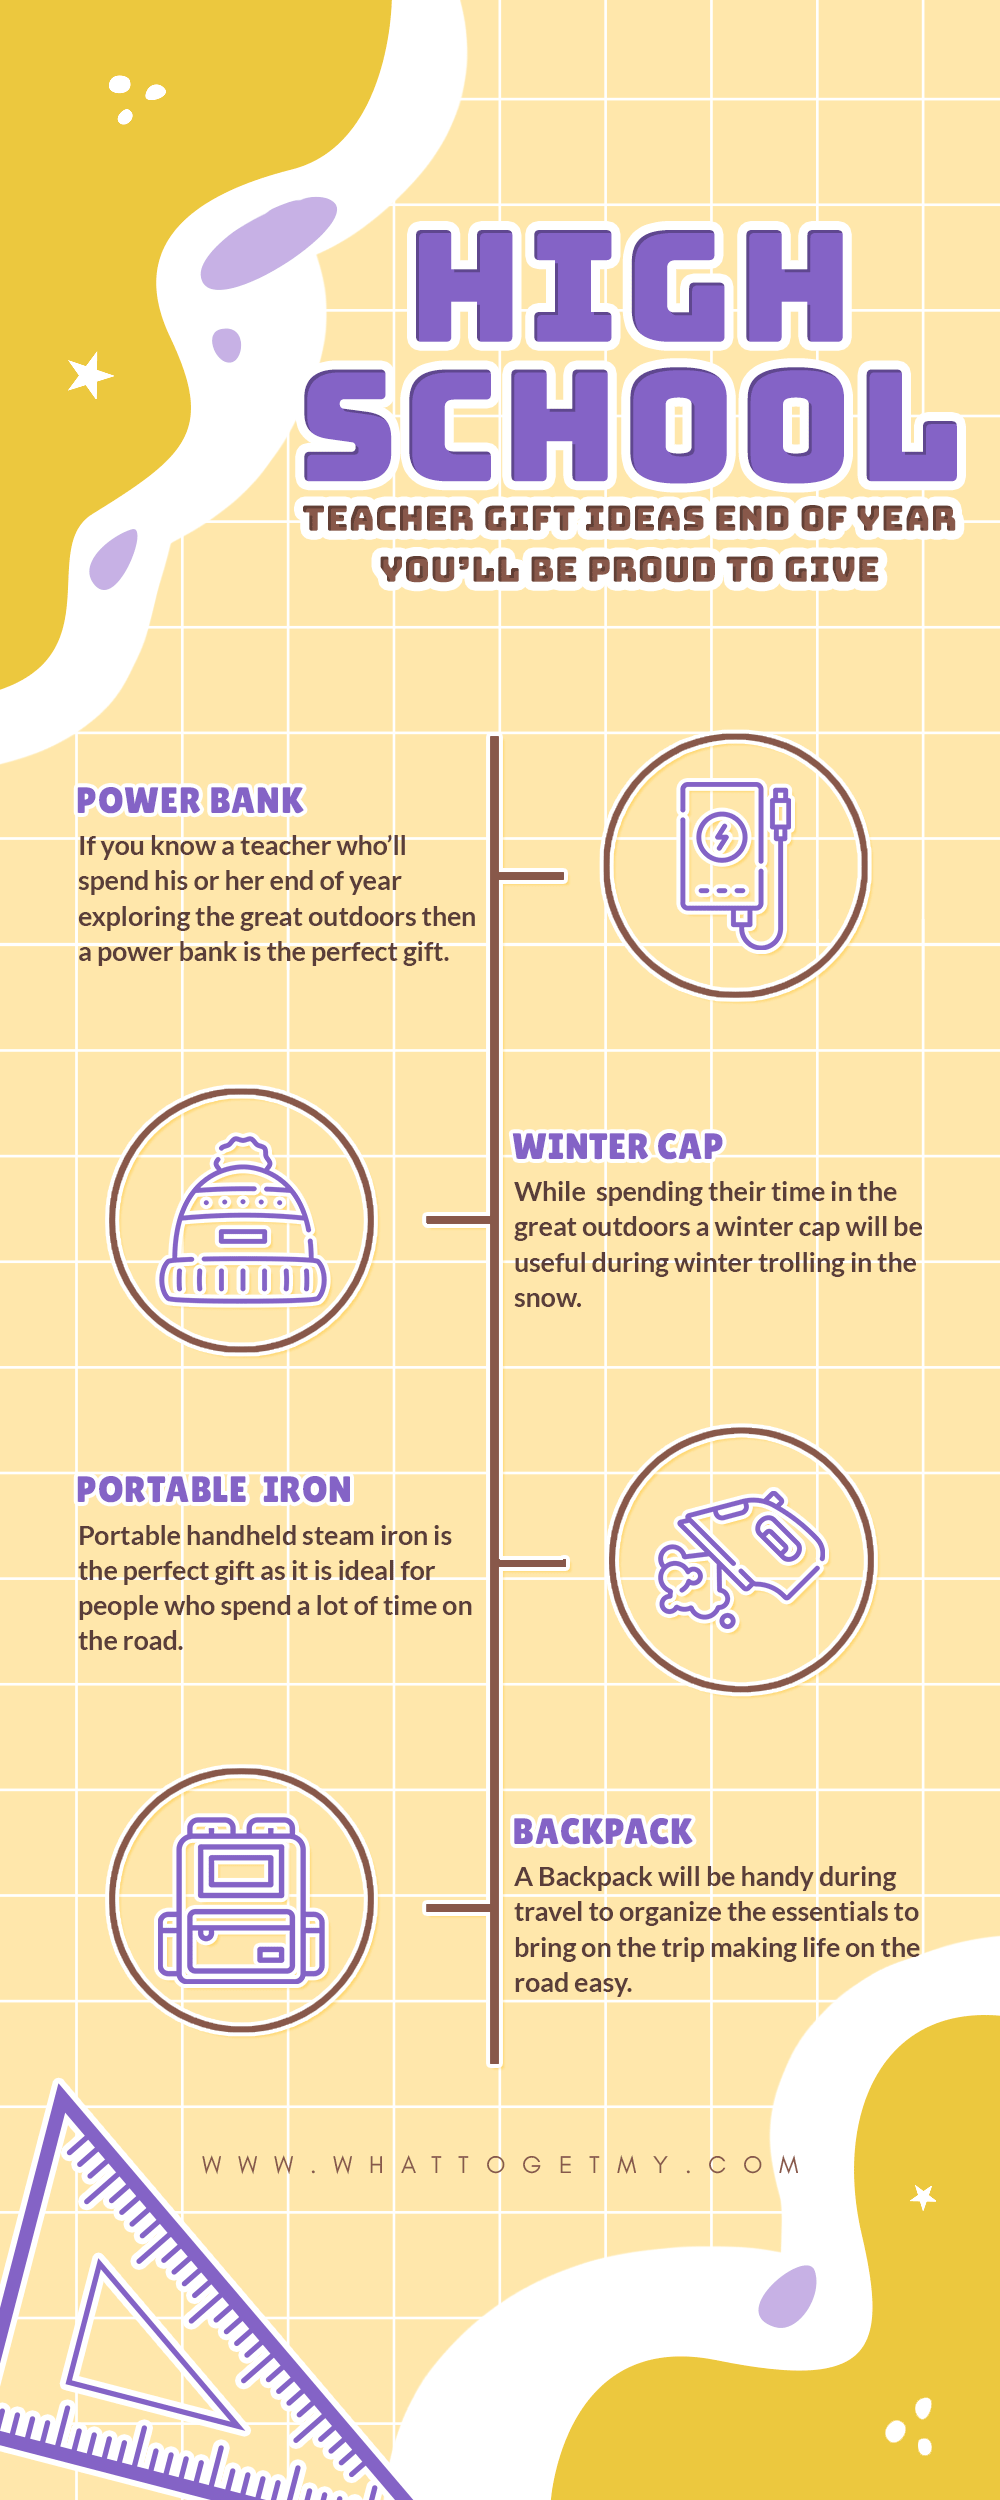 Infographic High School Teacher Gift Ideas End of Year You'll Be Proud to Give-min